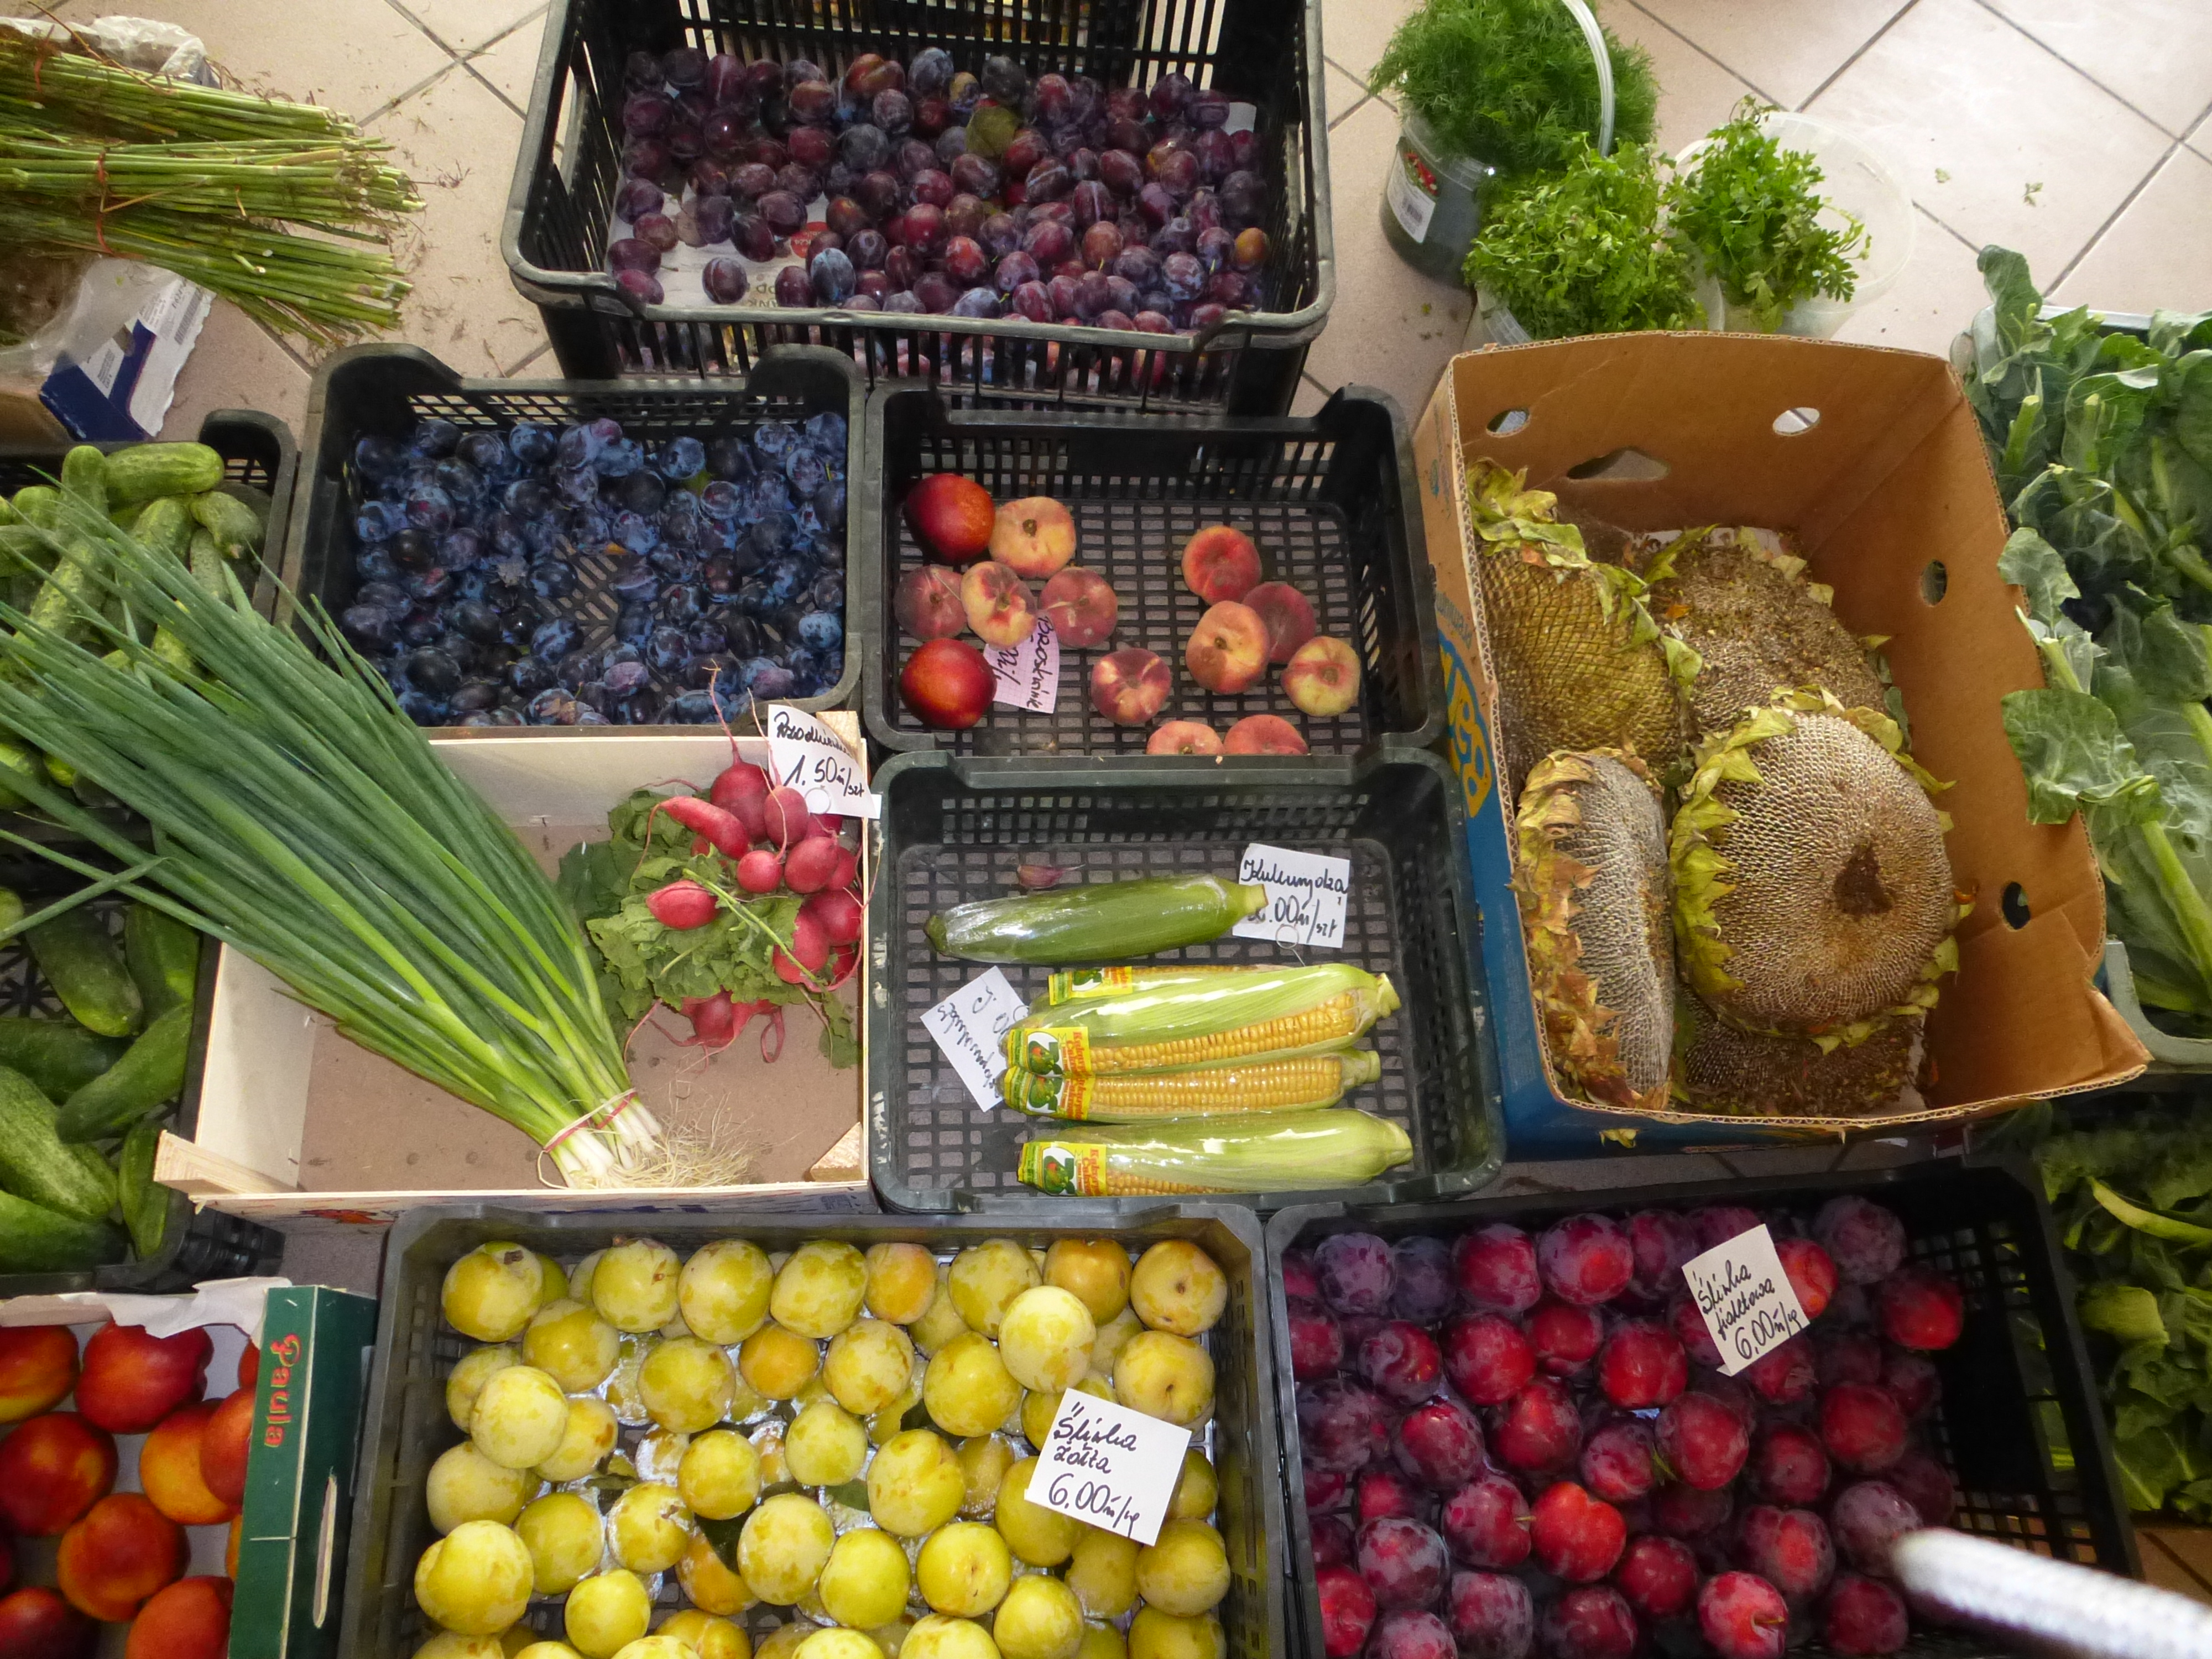 Friuit and veg in local mkt